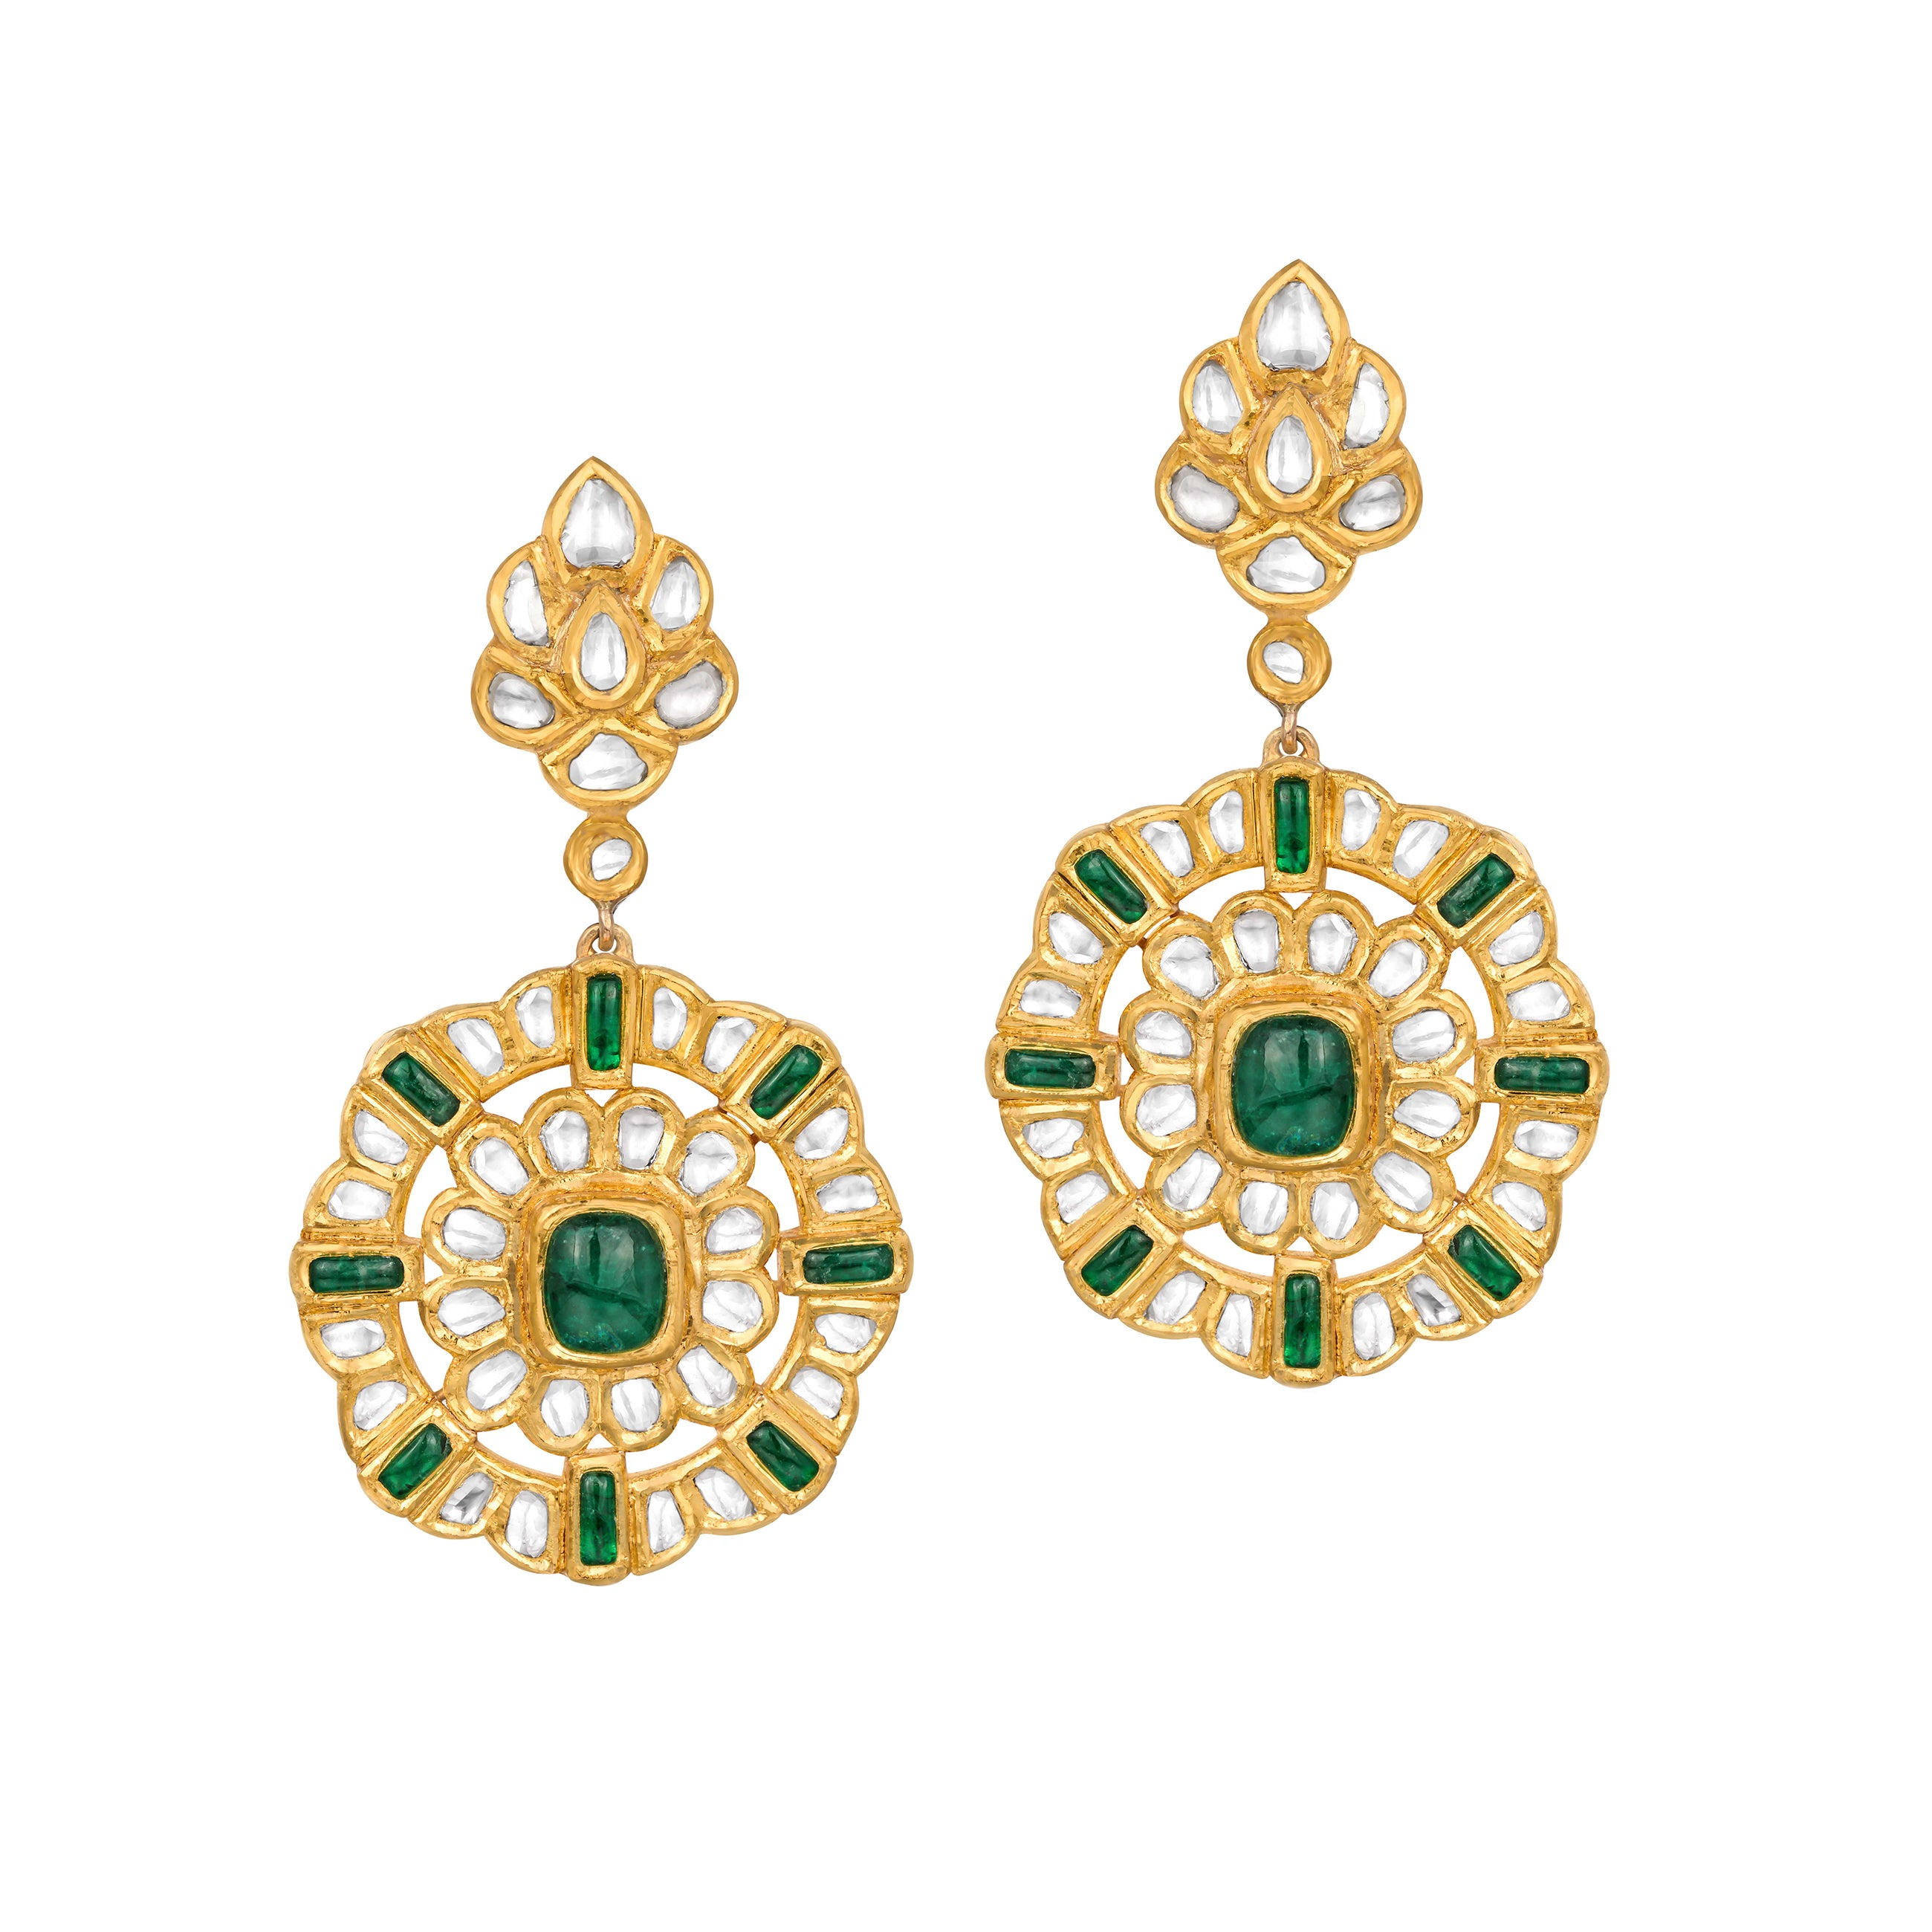 Uncut Diamond and Emerald Earrings